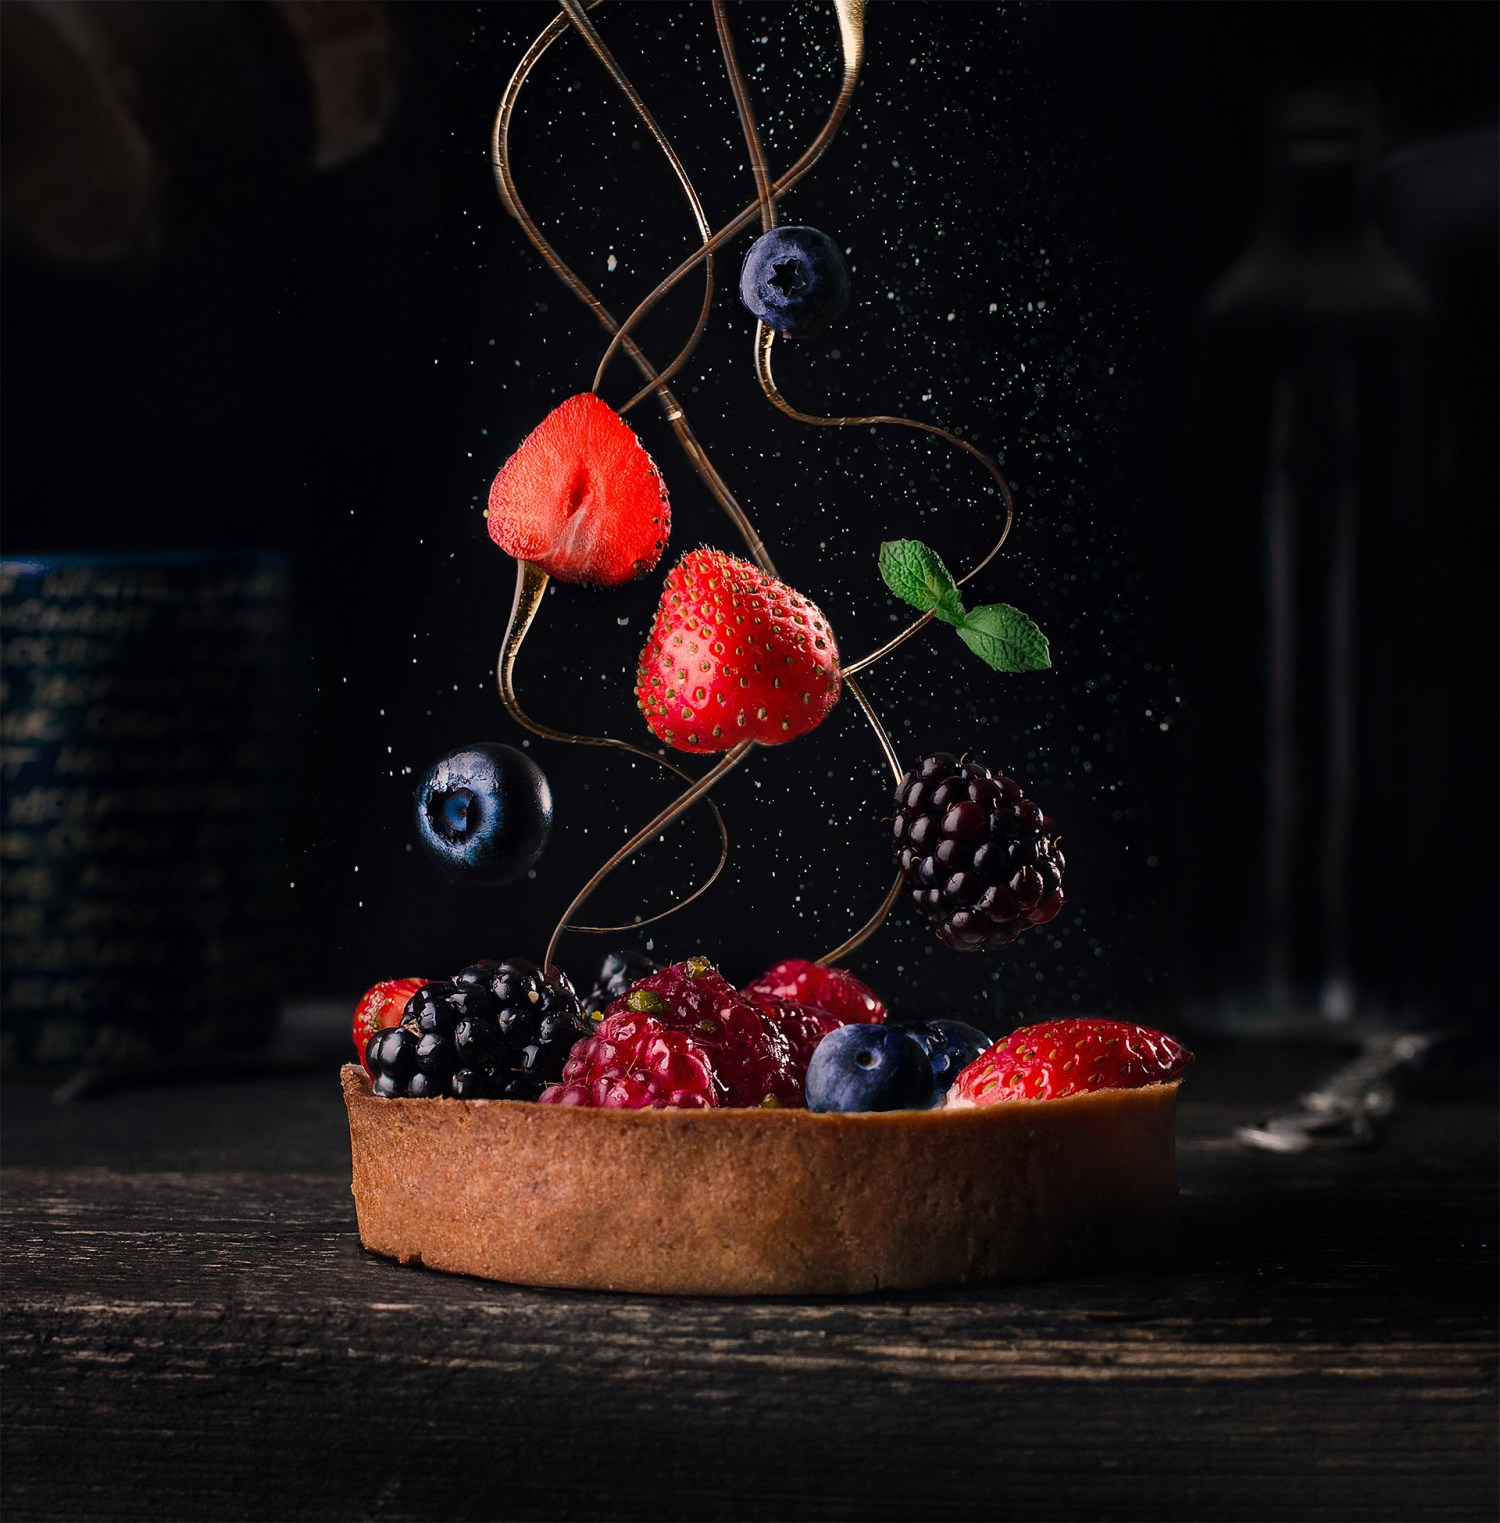 creative food photography ideas berries by pavel sablya